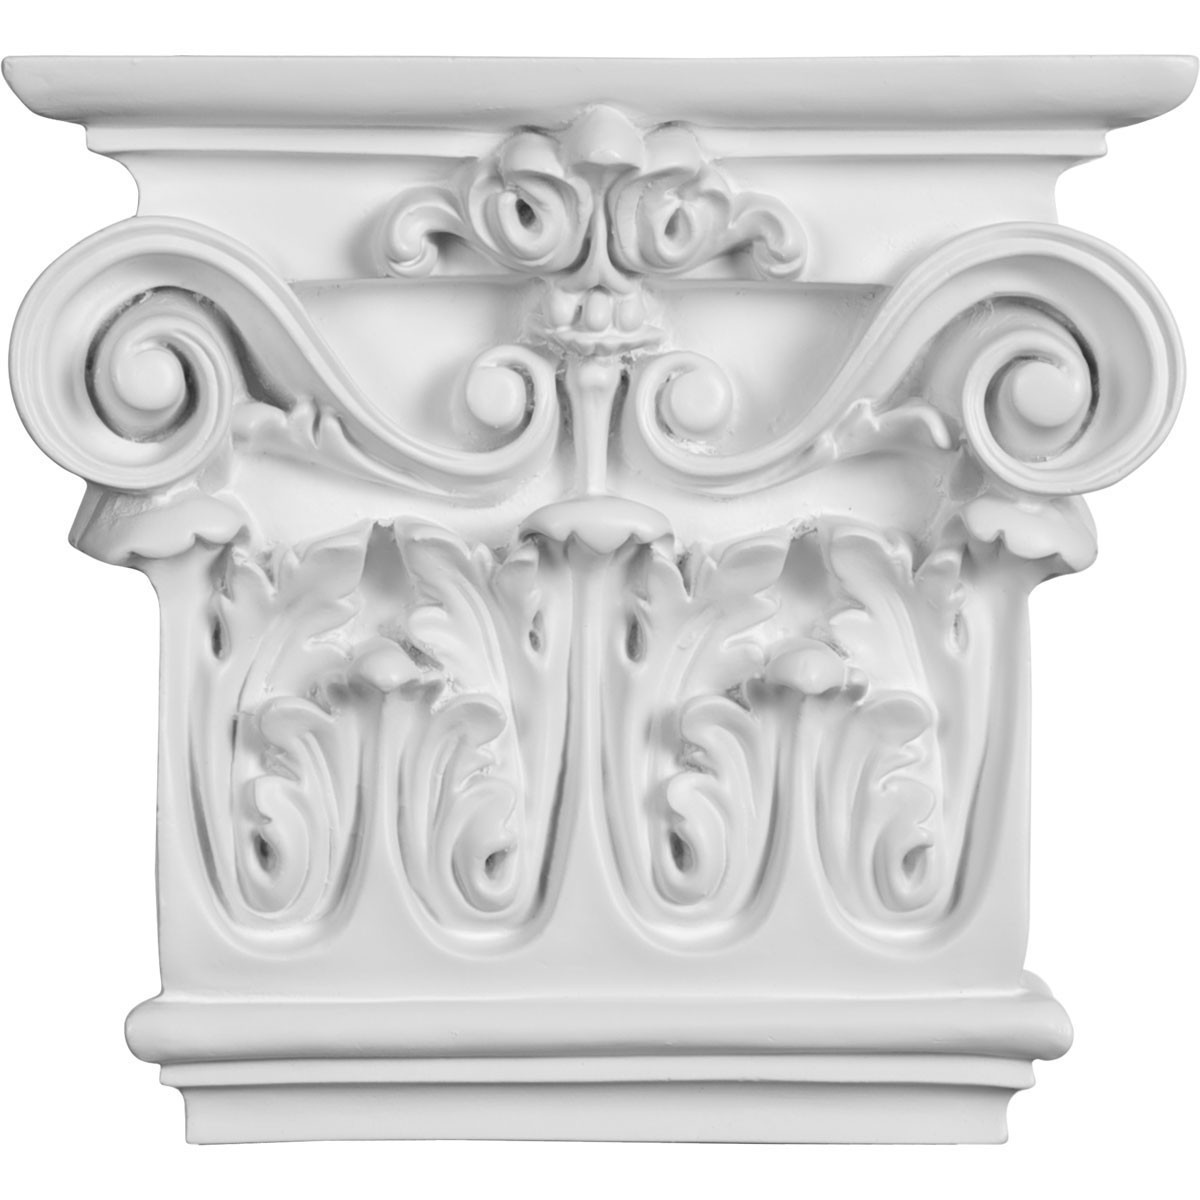 """EM-CAP09X07X03AR - 7 1/2""""W x 8 5/8""""H x 2 1/2""""P Artis Onlay Capital (Fits Pilasters up to 5 1/4""""W x 1/2""""D)"""